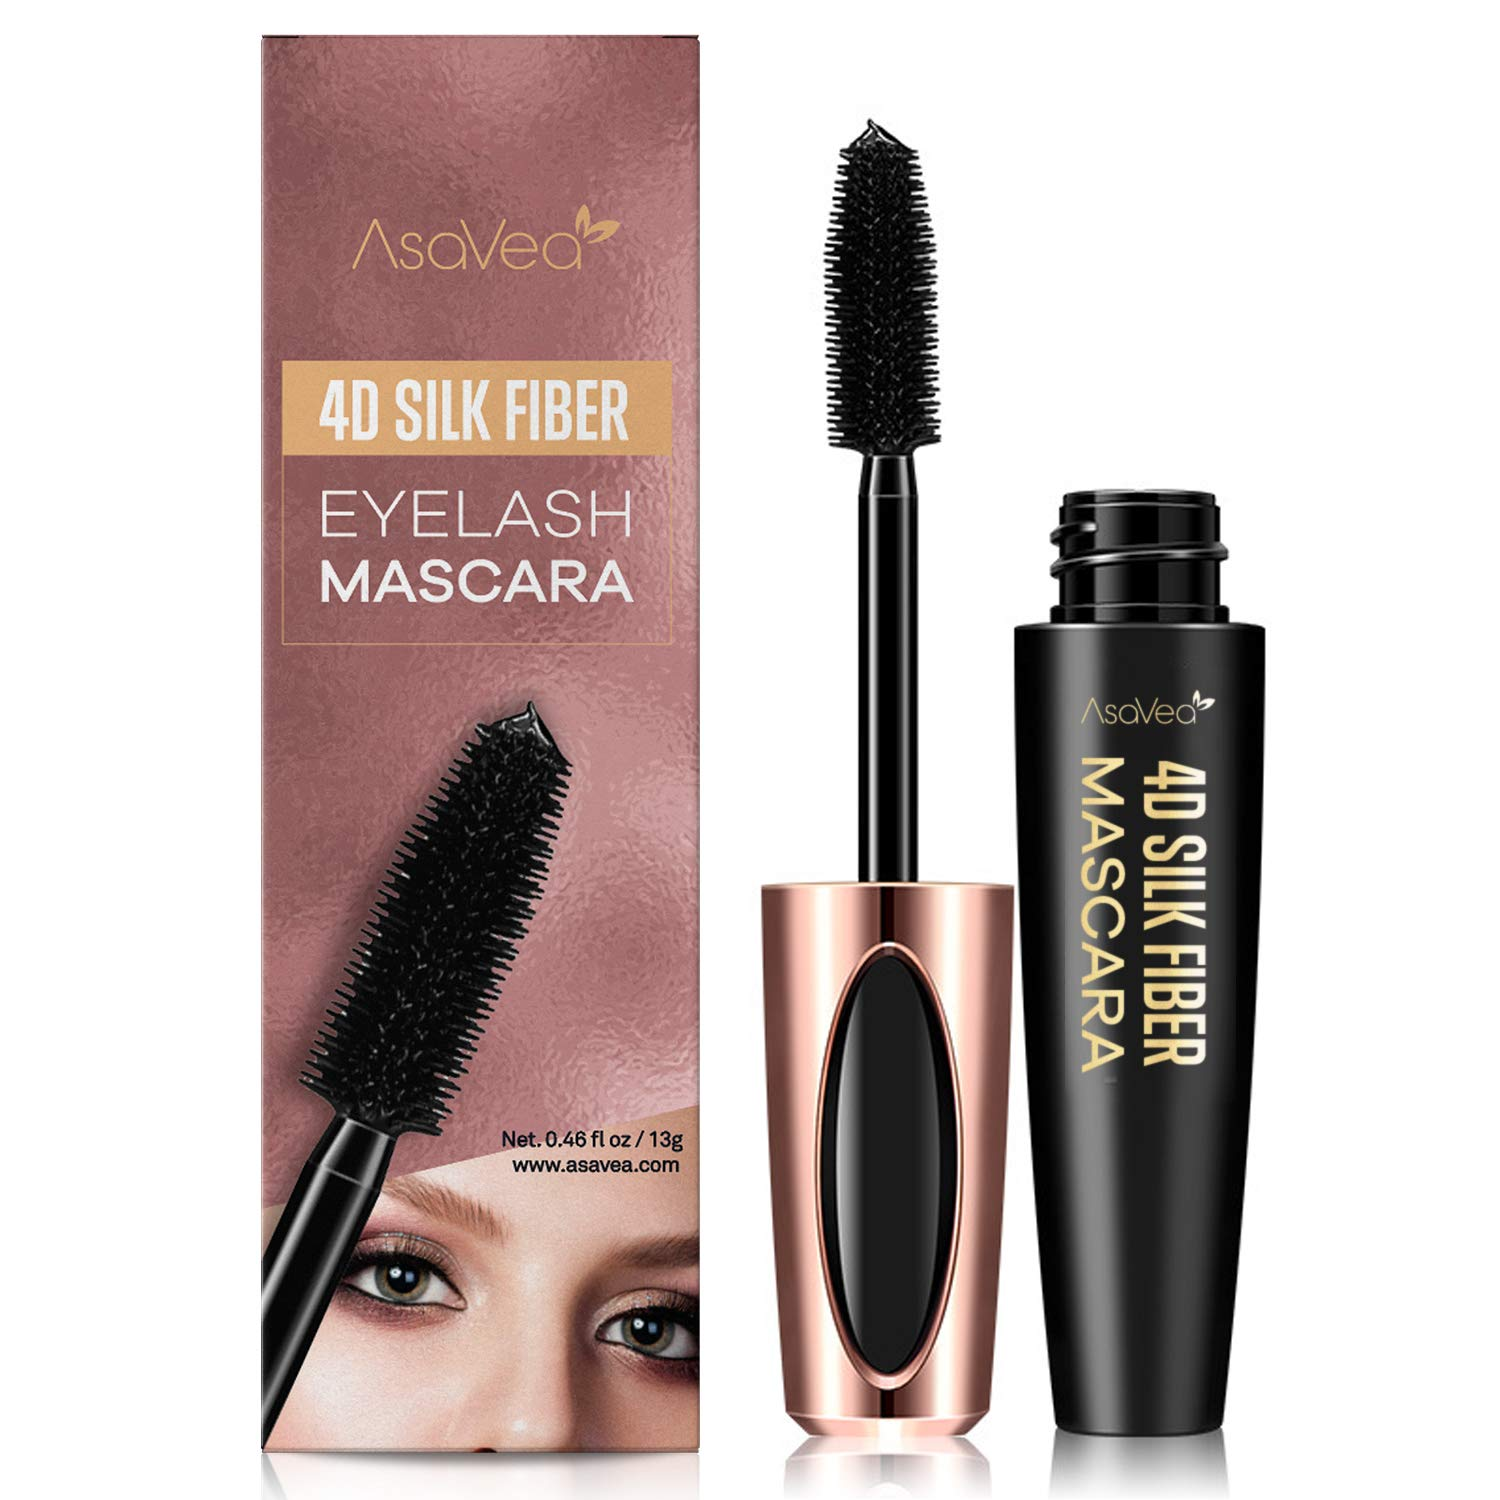 Natural 4D Silk Fiber Lash Mascara, Lengthening and Thick, Long Lasting, Waterproof & Smudge-Proof, All Day Exquisitely Lush, Full, Long, Thick, Smudge-Proof Eyelashes by AsaVea